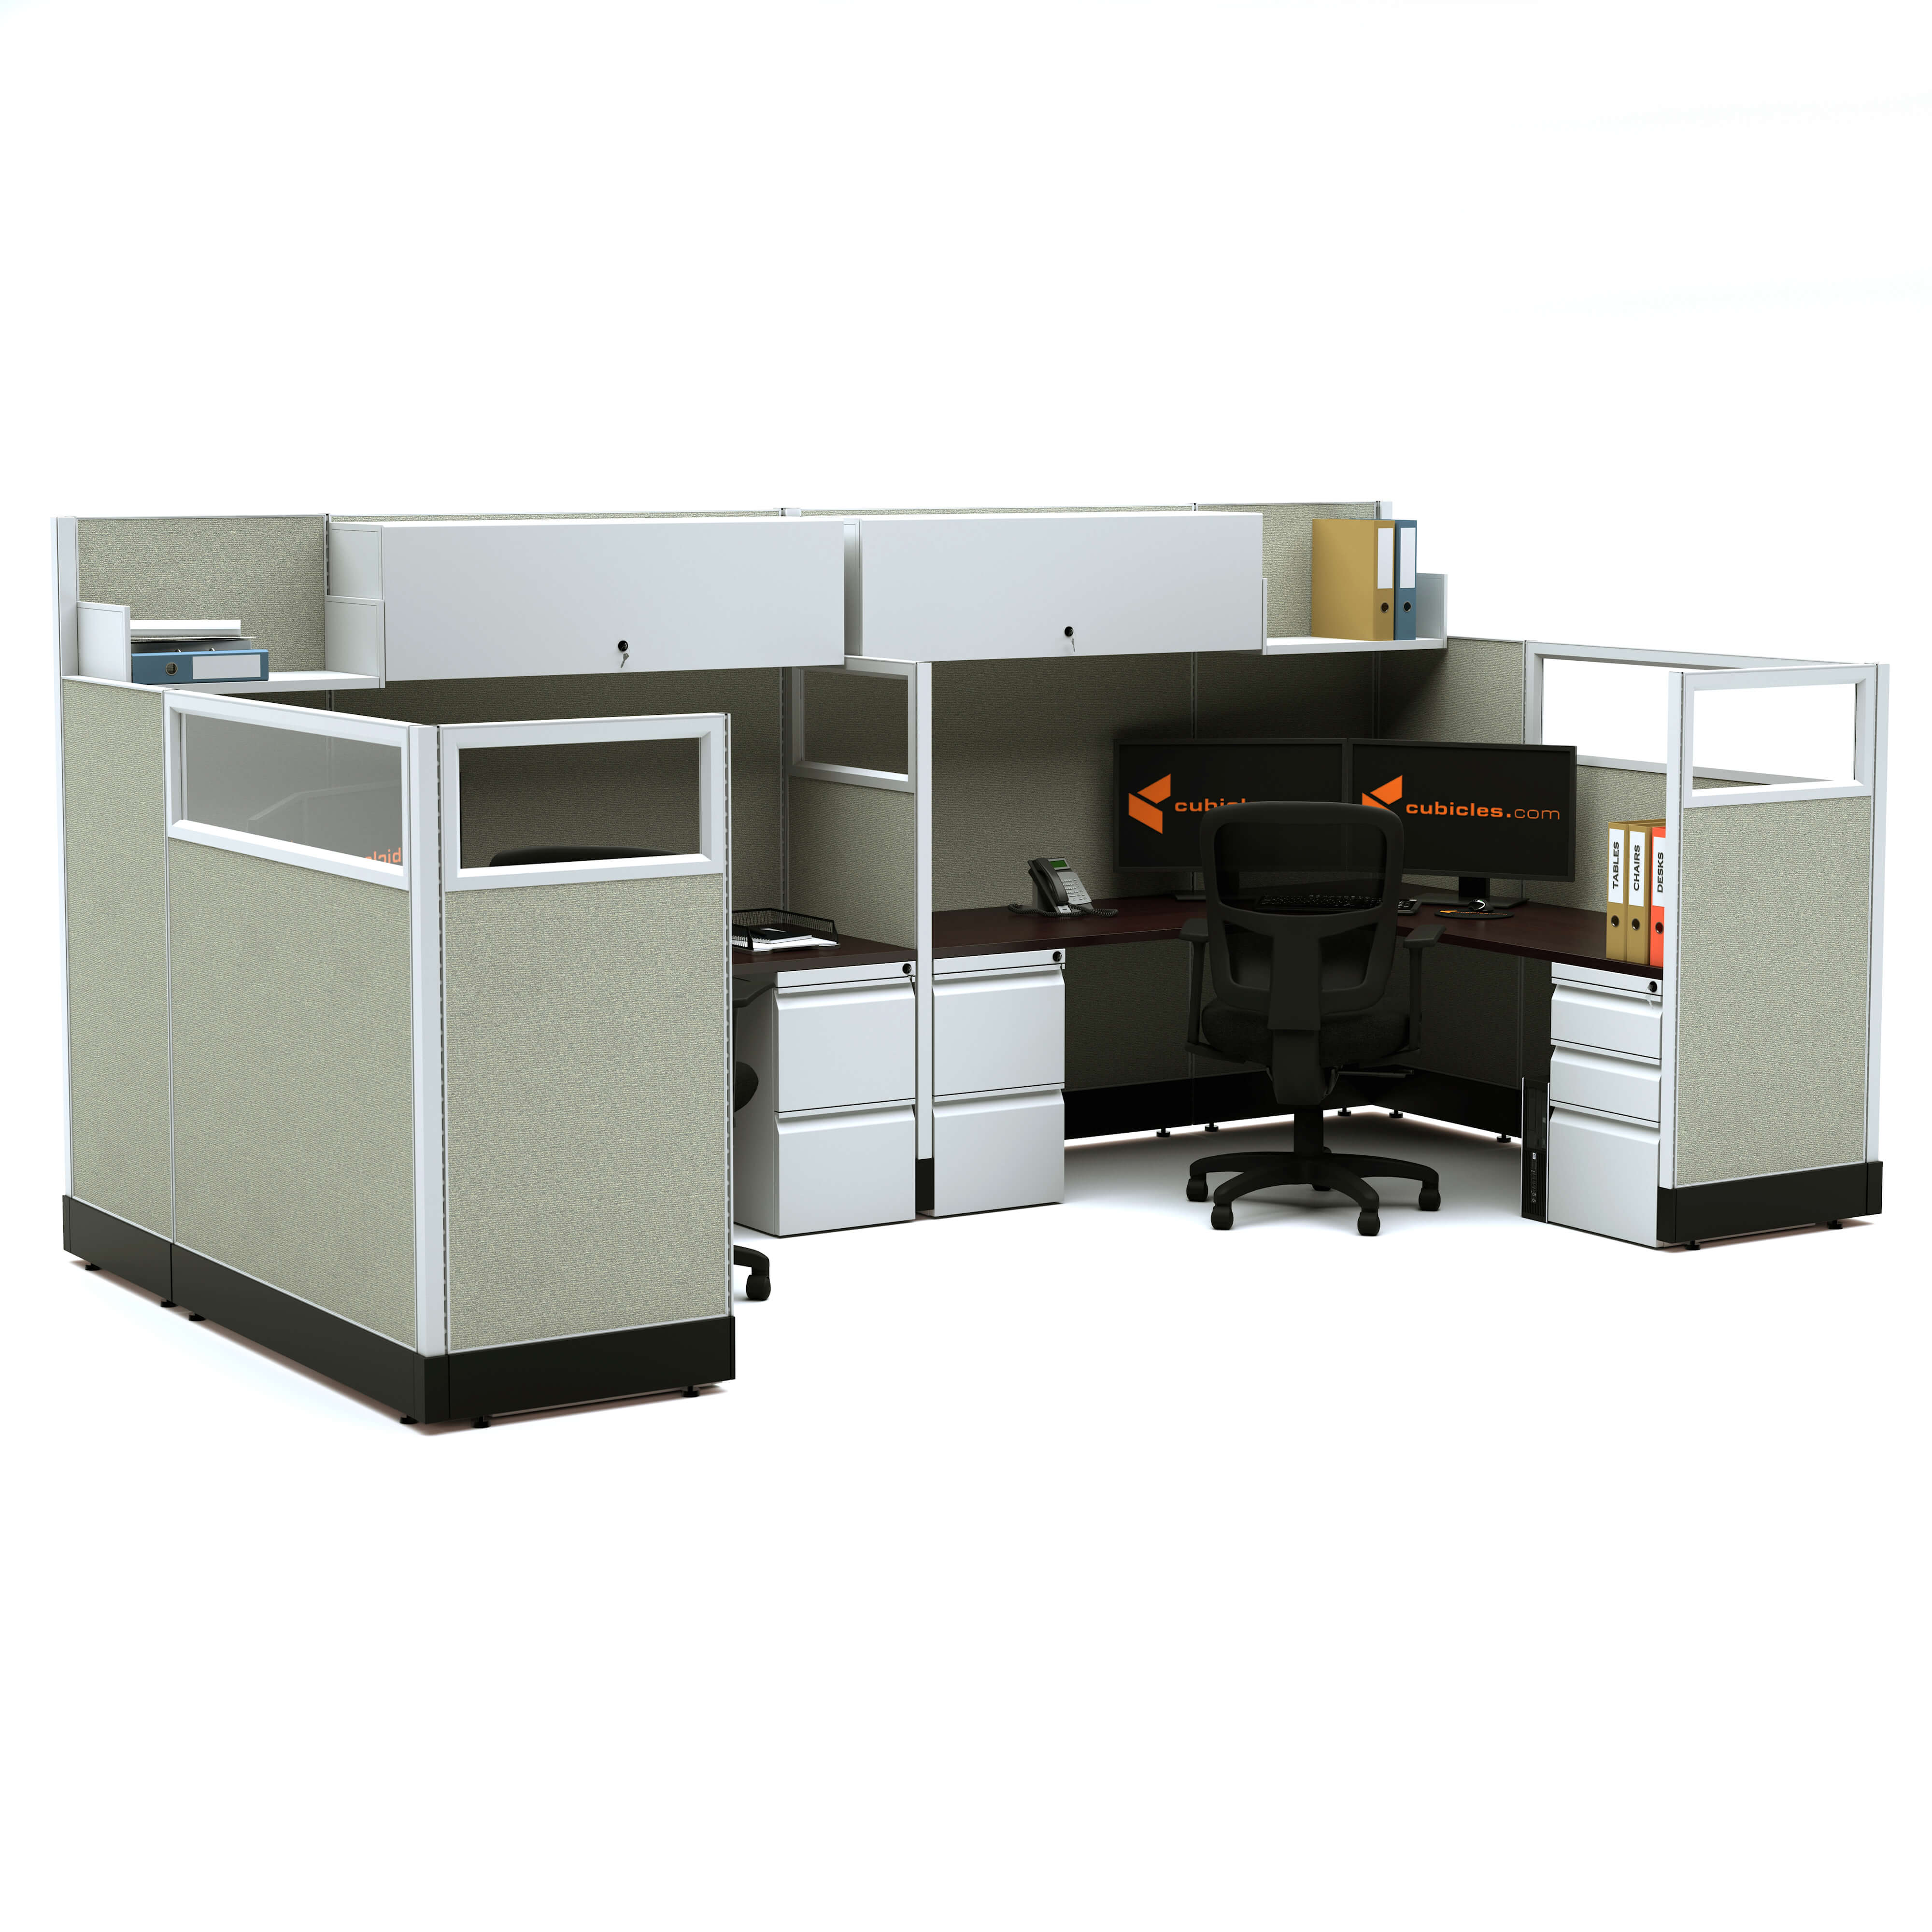 modular-office-furniture-modular-office-workstations-53-67-2pack-bullpen-unpowered.jpg